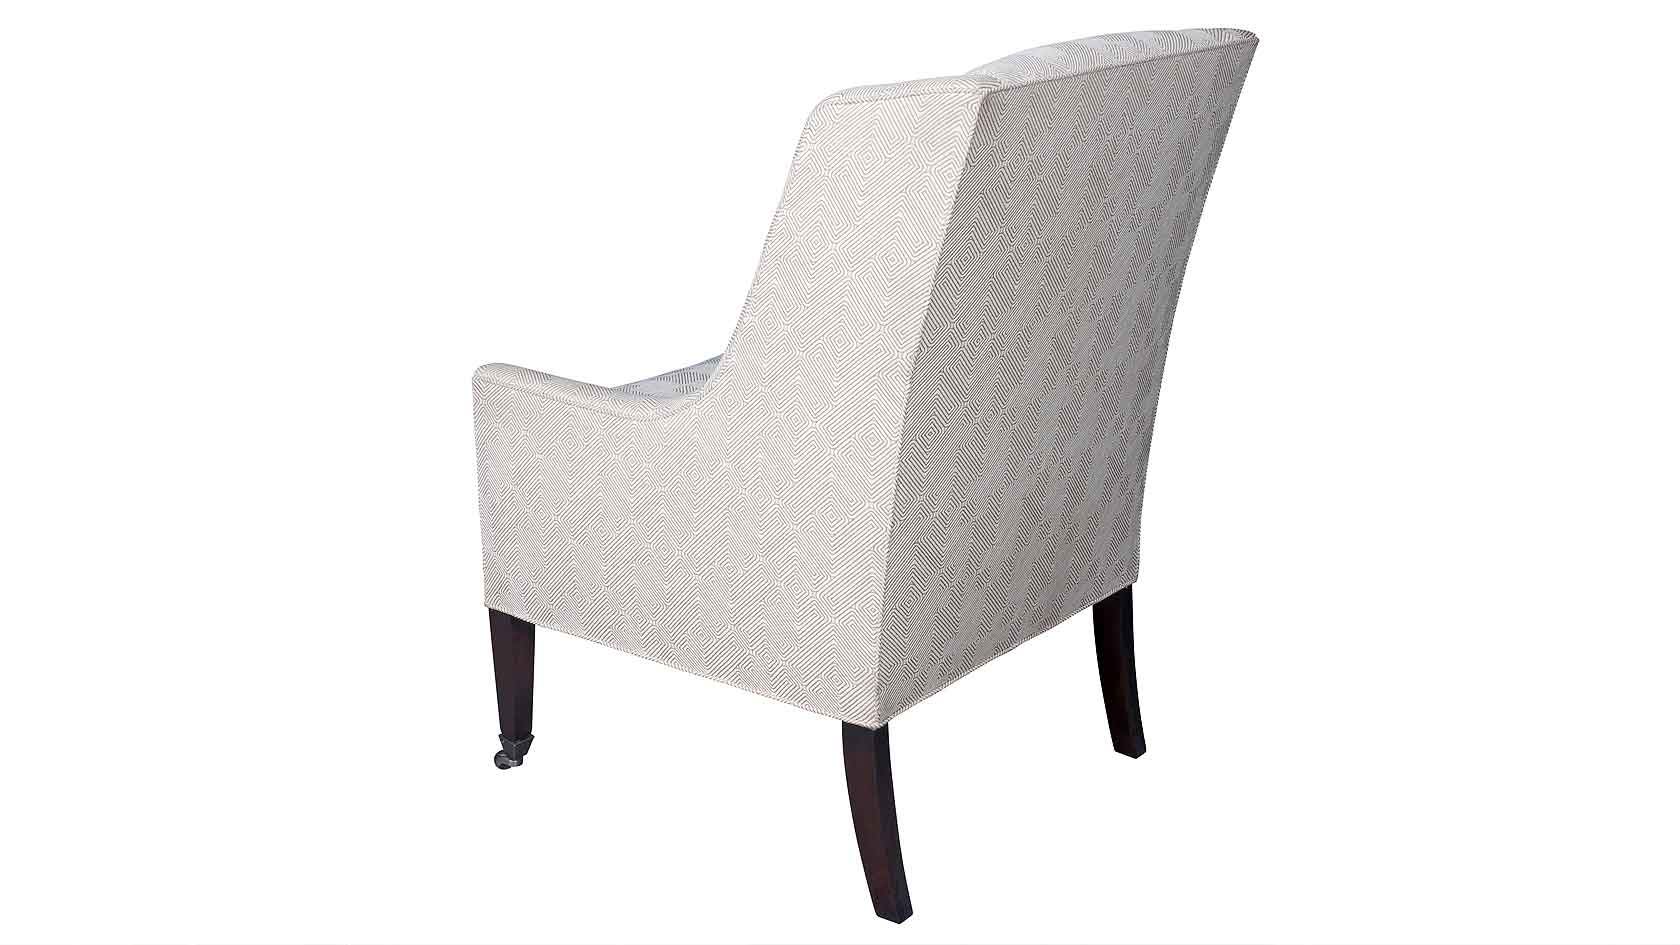 westmount chair - £10 collection